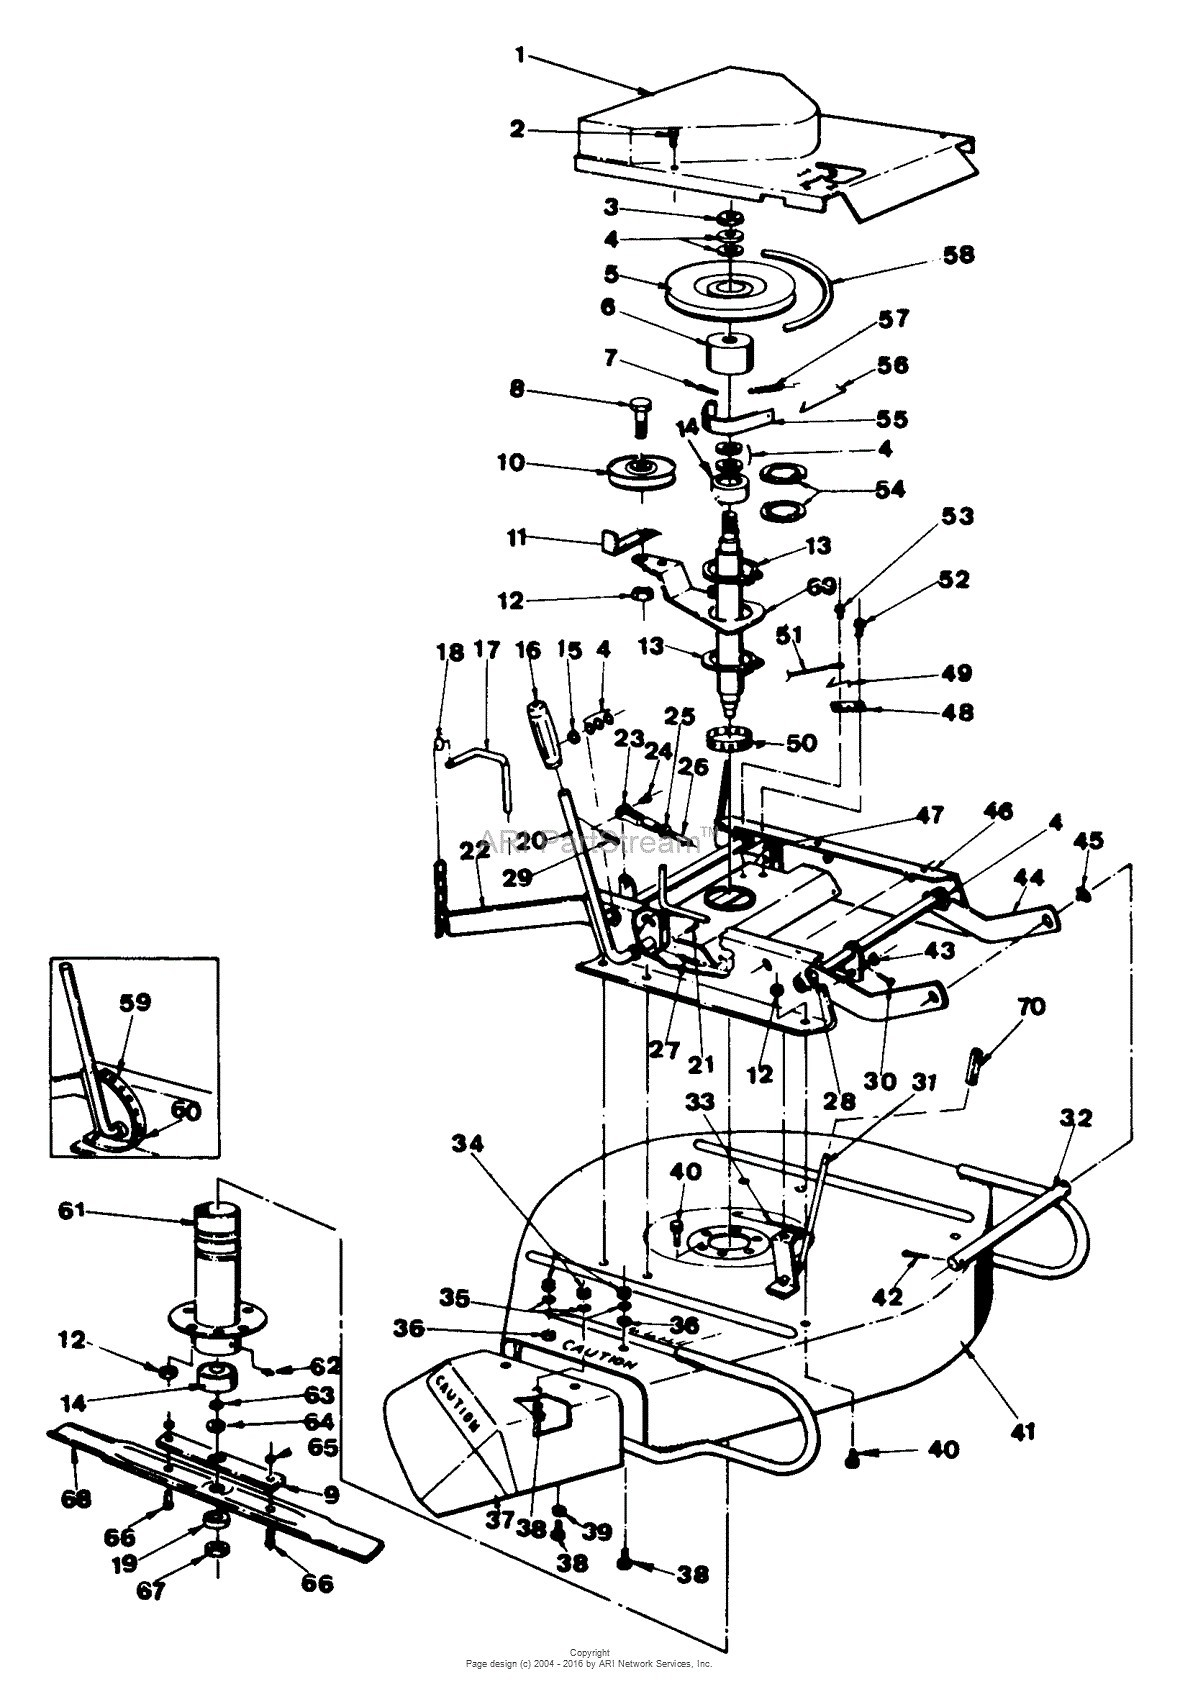 honda gcv160 engine parts diagram honda gc160 parts